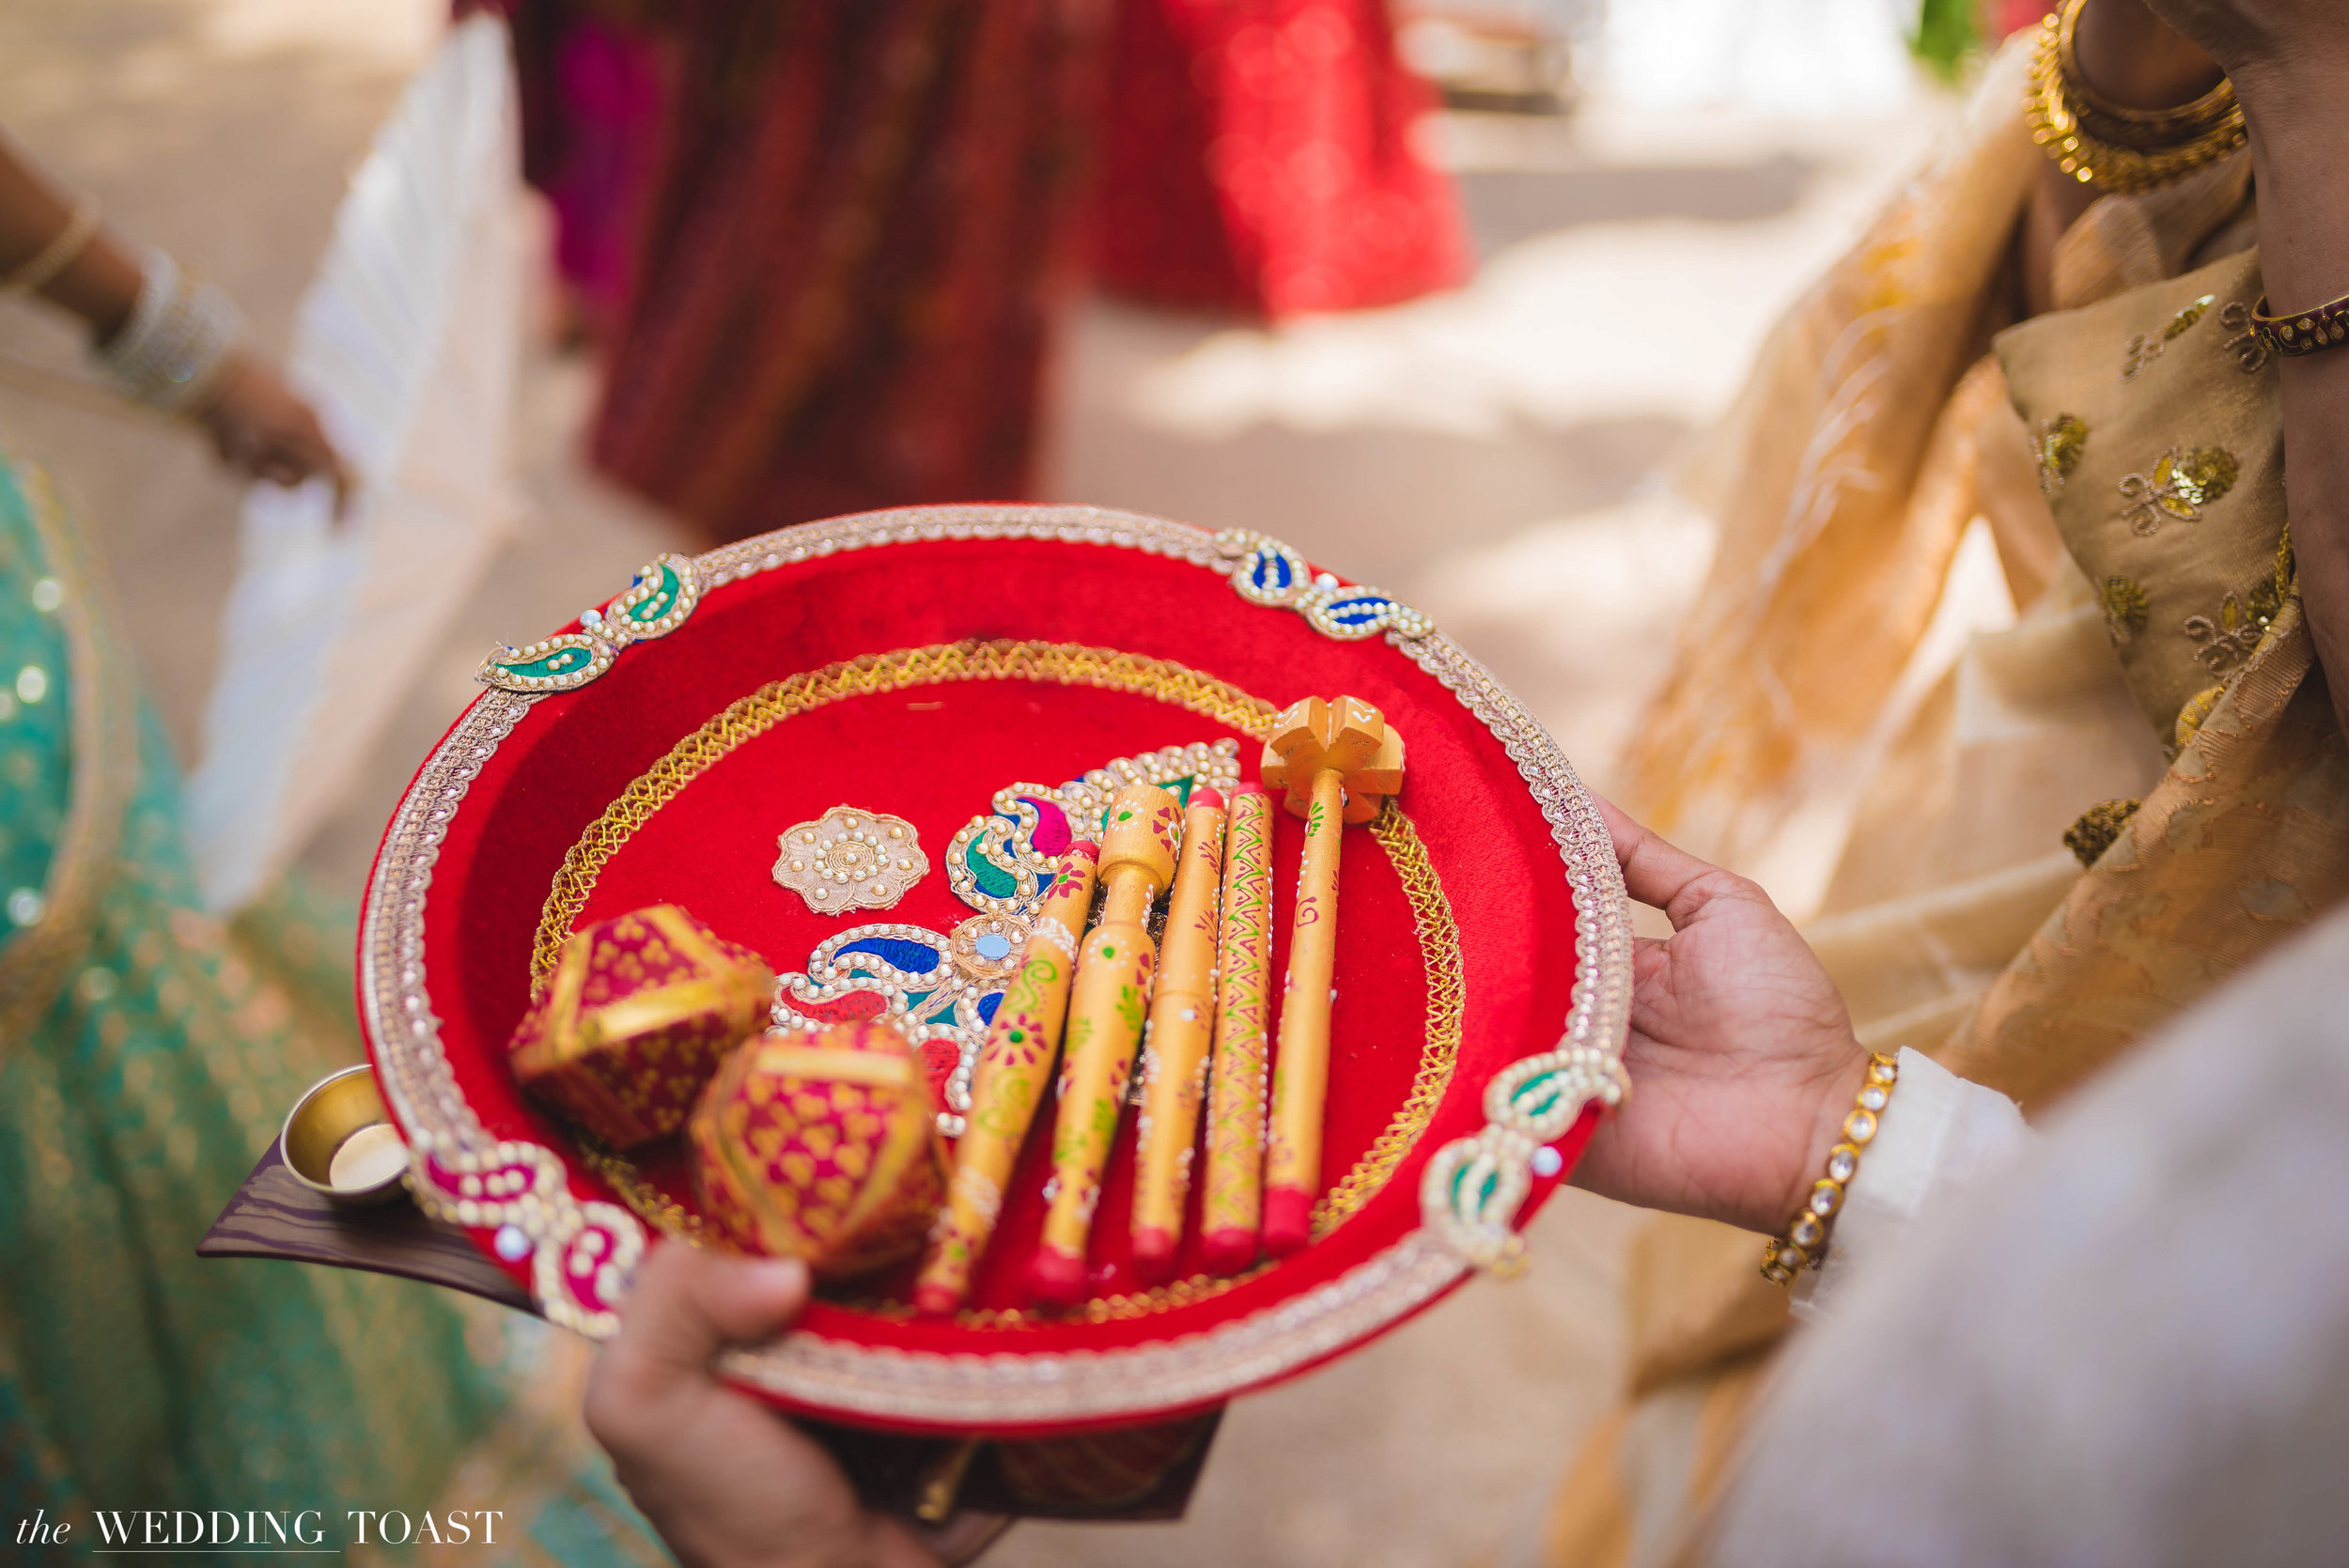 Anuraag Rathi The Wedding Toast-206.jpg